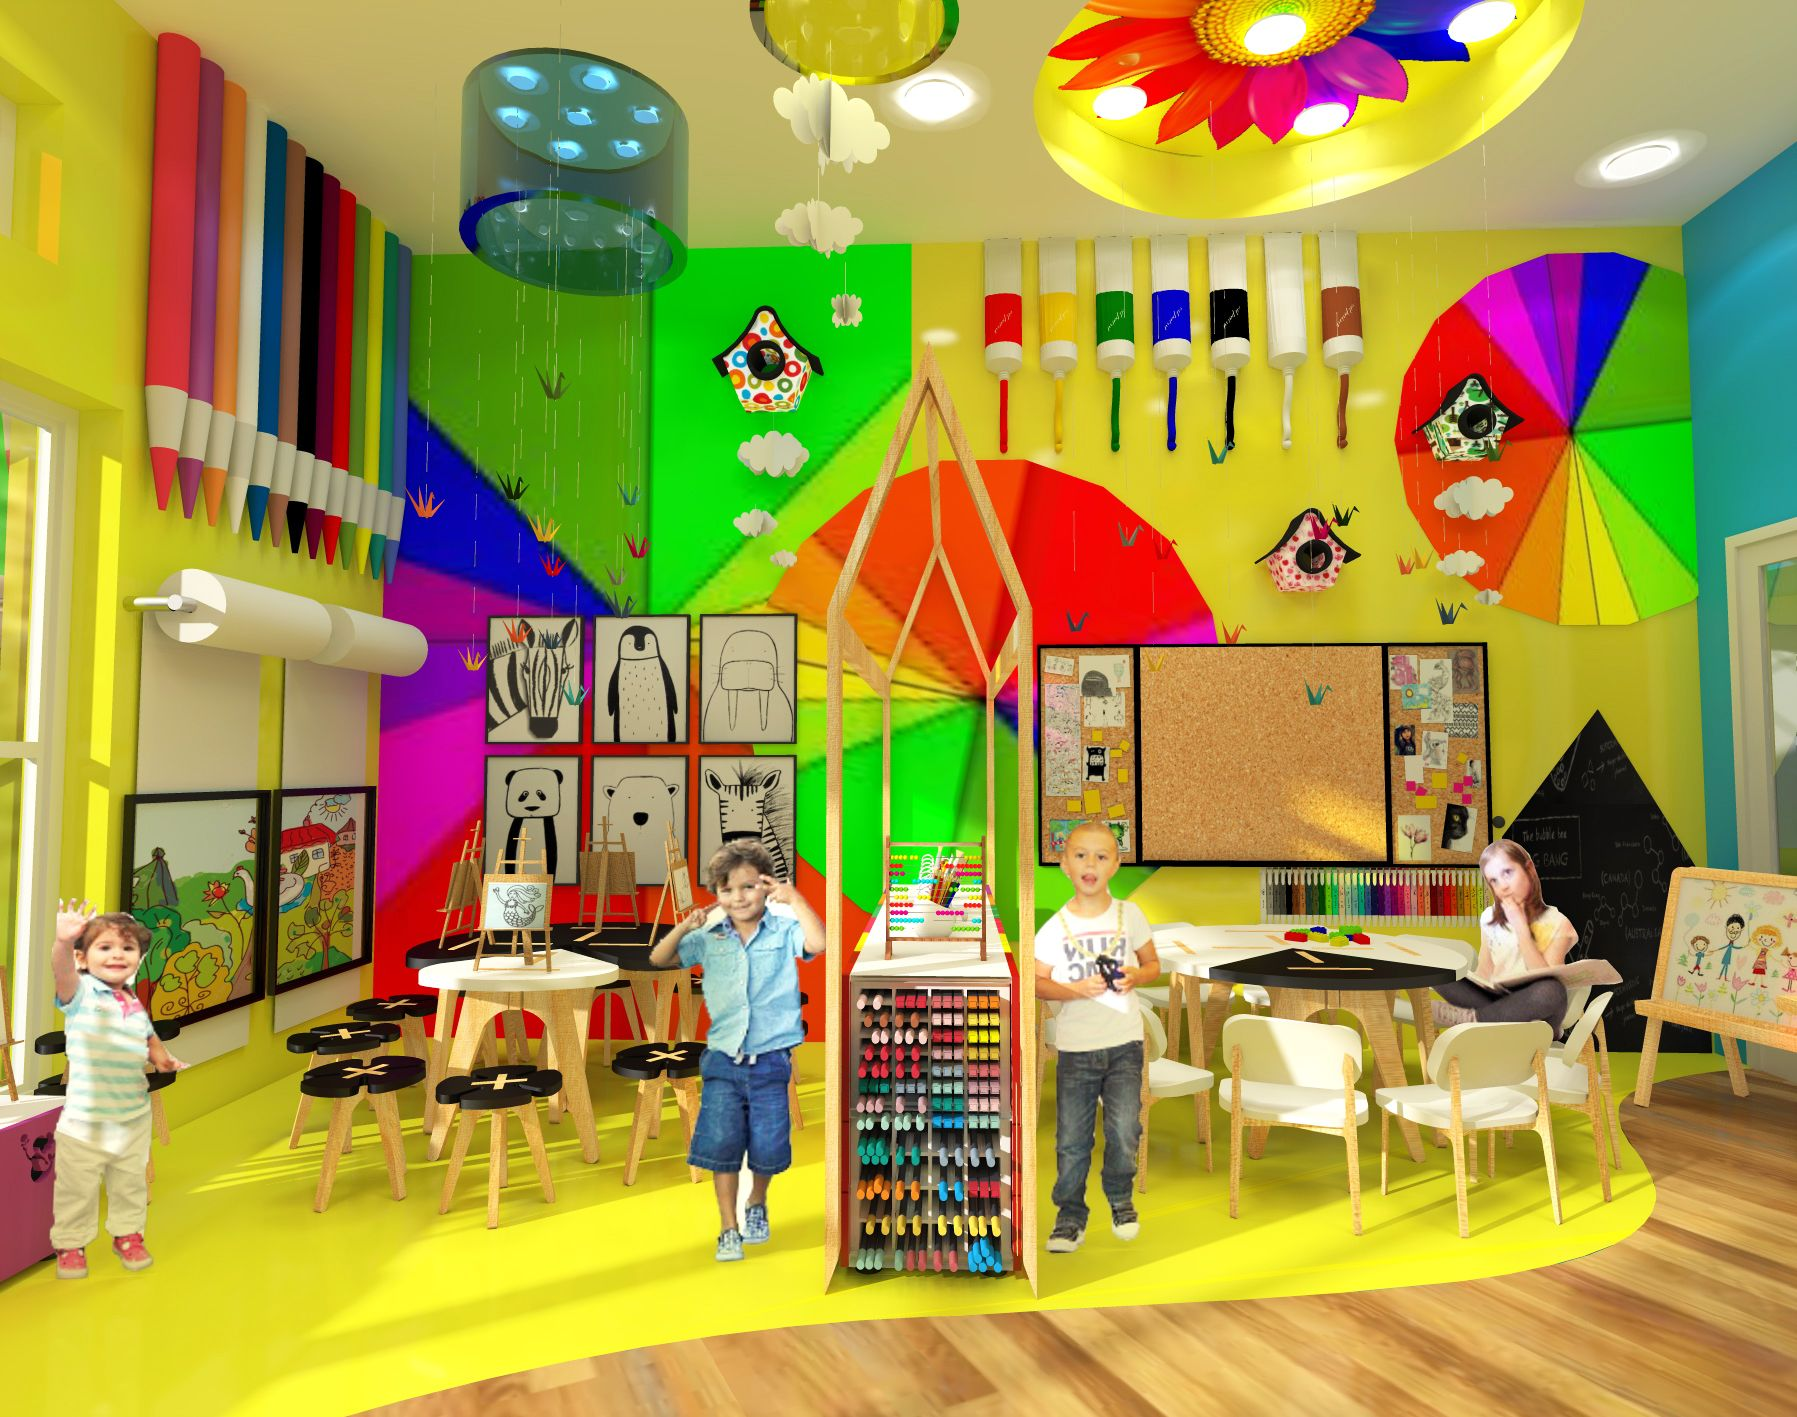 Kindergarten Playroom Design - Colorful Spaces - Mandala Floor -